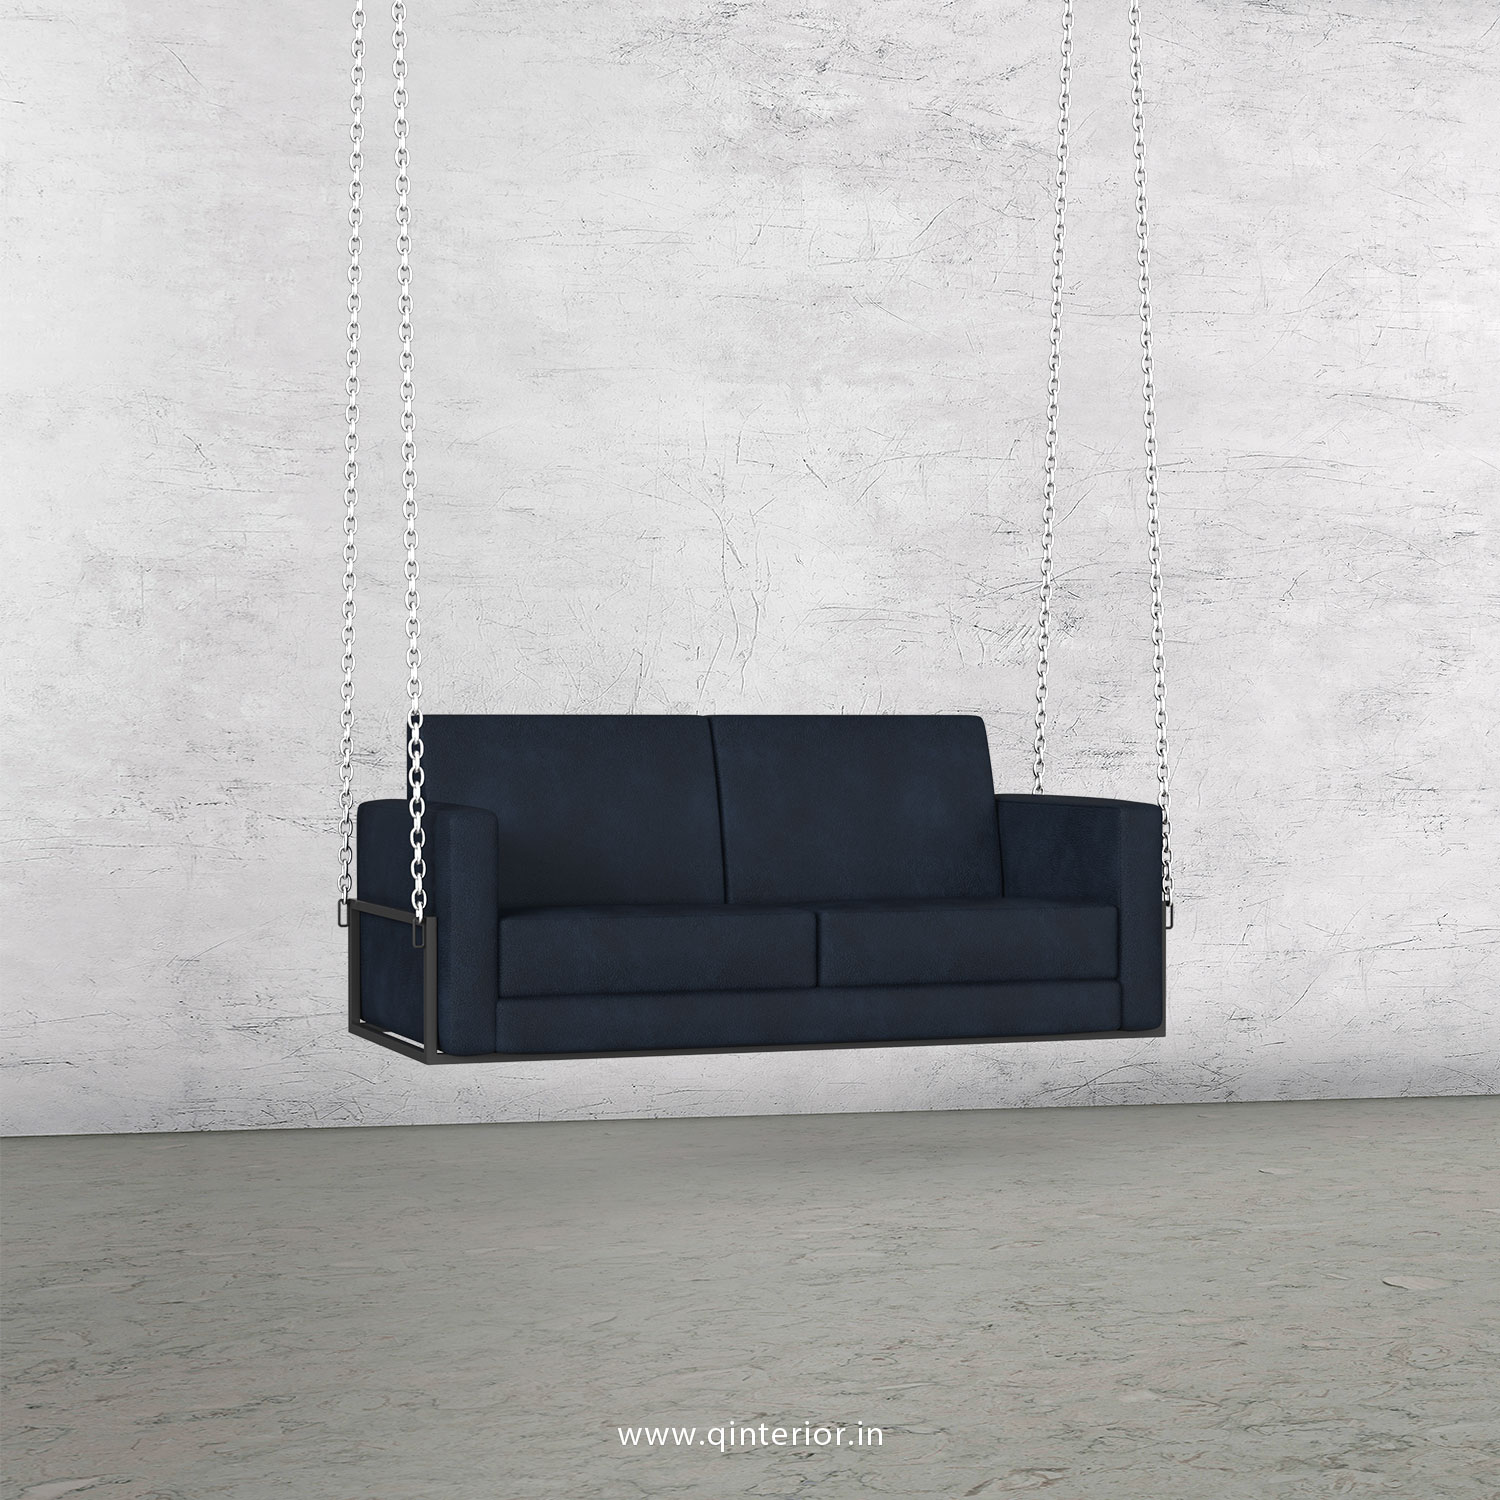 NIRVANA 2 Seater Swing Sofa in Fab Leather Fabric - SSF001 FL13